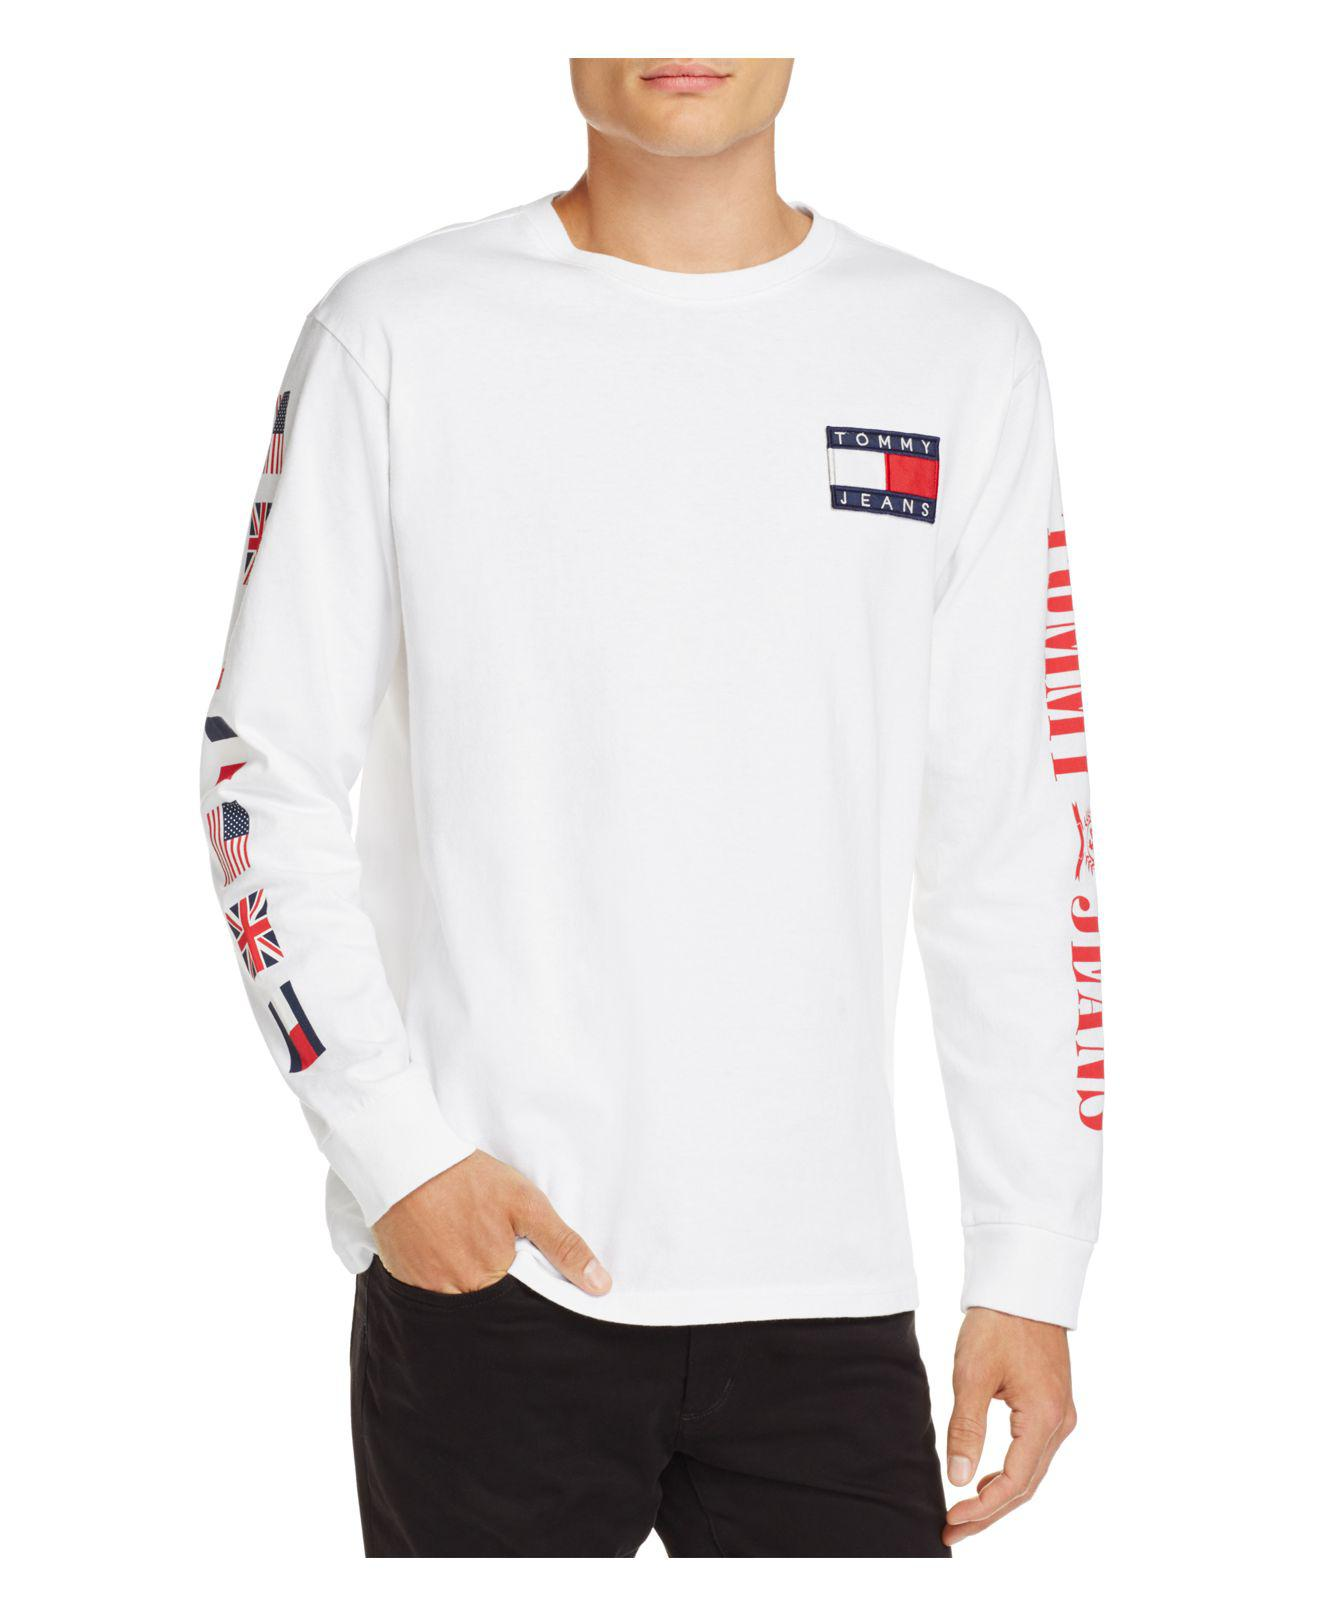 507c311c425017 Lyst - Tommy Hilfiger Tommy Jeans 90 s Logo Long Sleeve Crewneck Tee ...